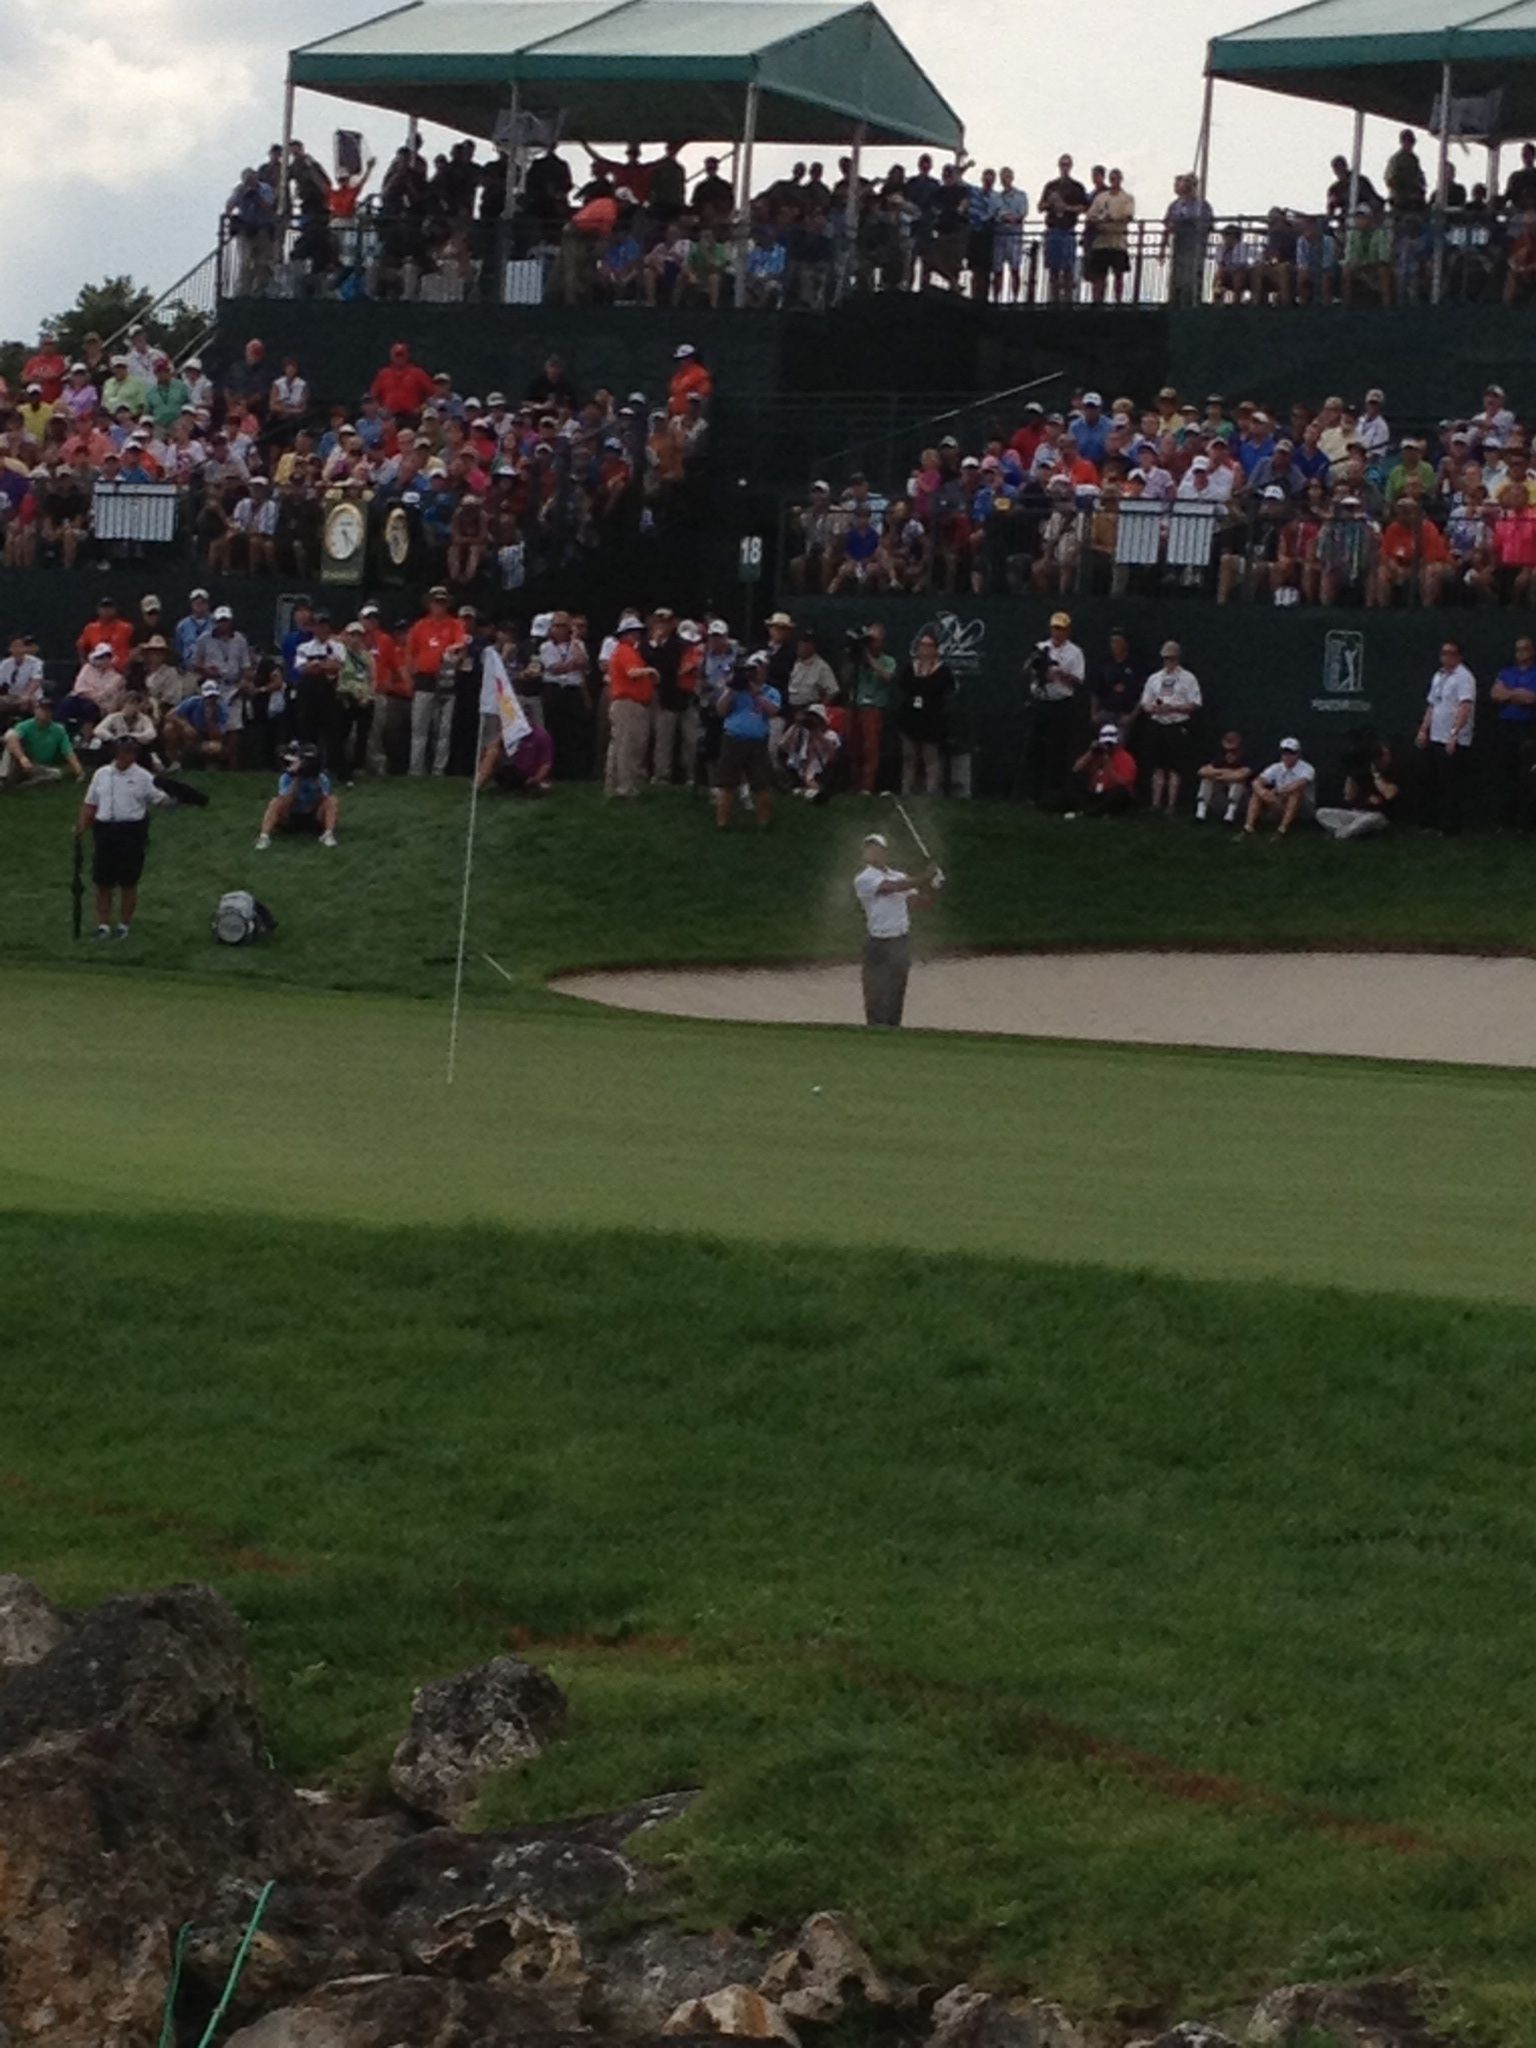 Tiger Woods out of the 18th bunker Arnold Palmer Invitational Bay Hill, Florida 2013